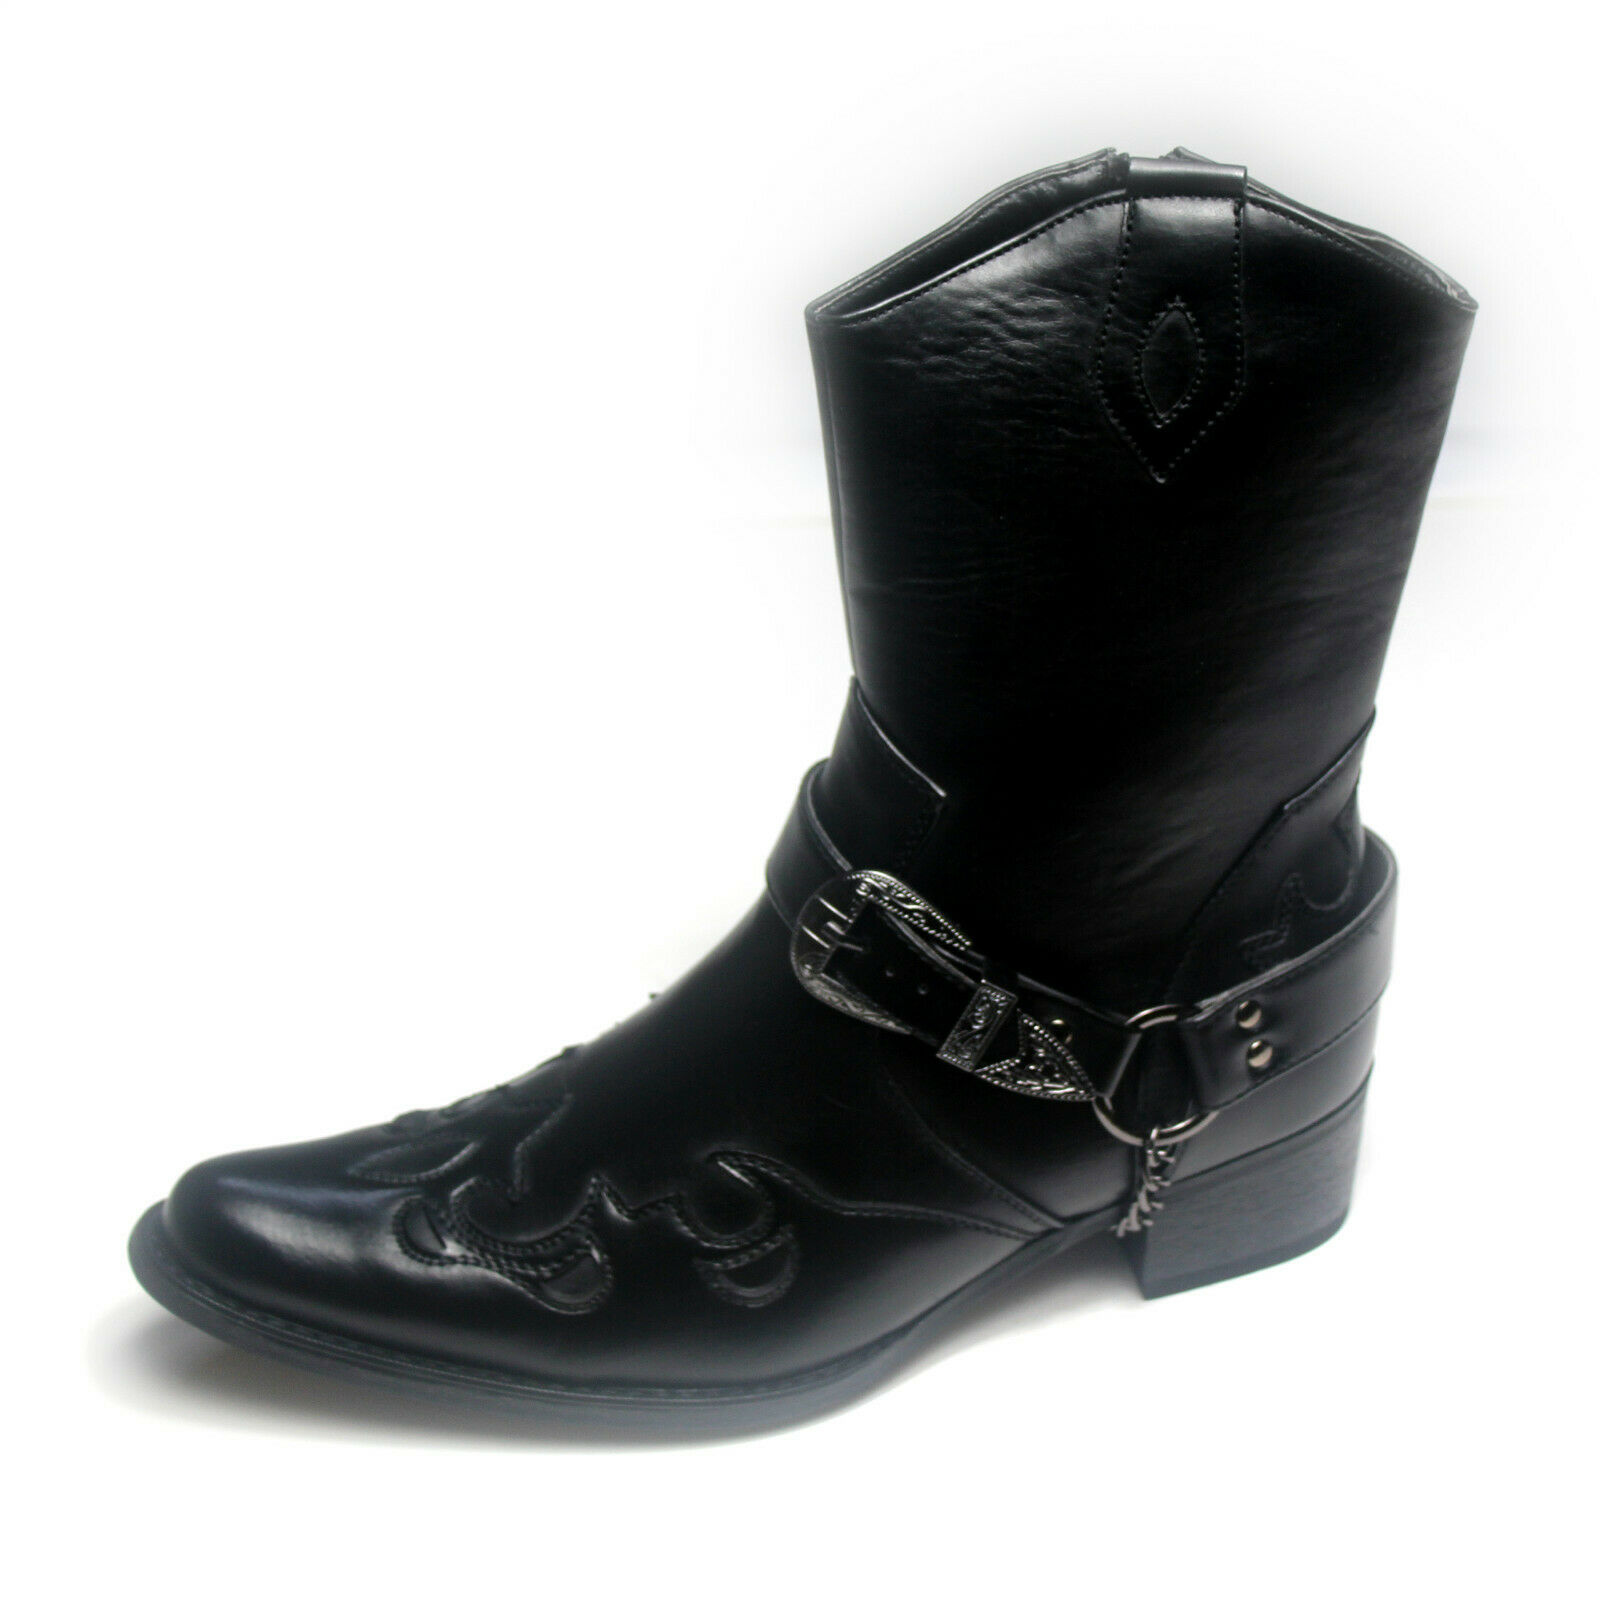 Mens Gents Western Style Casual Party Cowboy Boots Black Size 6 7 8 9 11 12